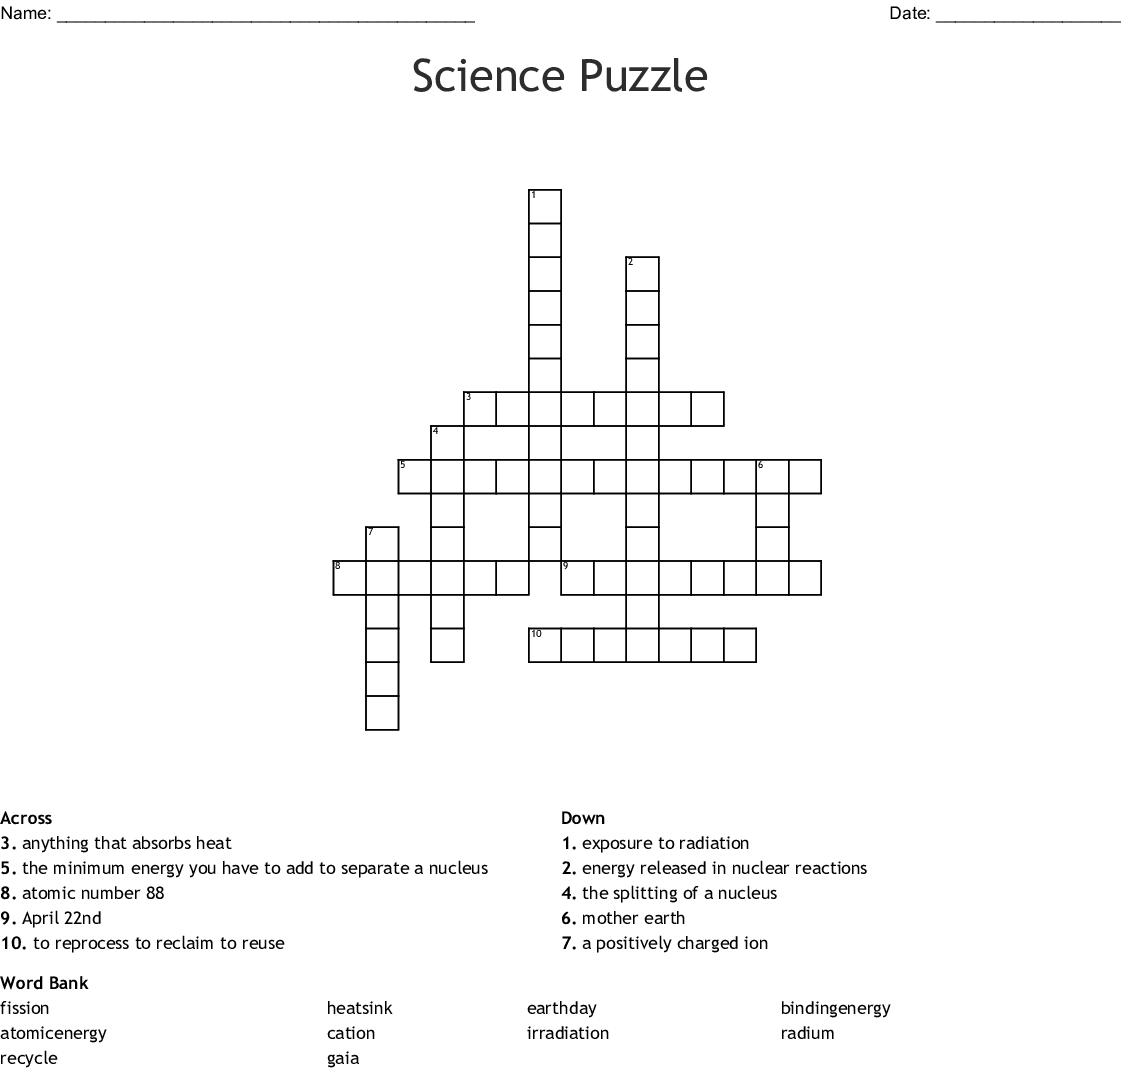 Science Puzzle Crossword